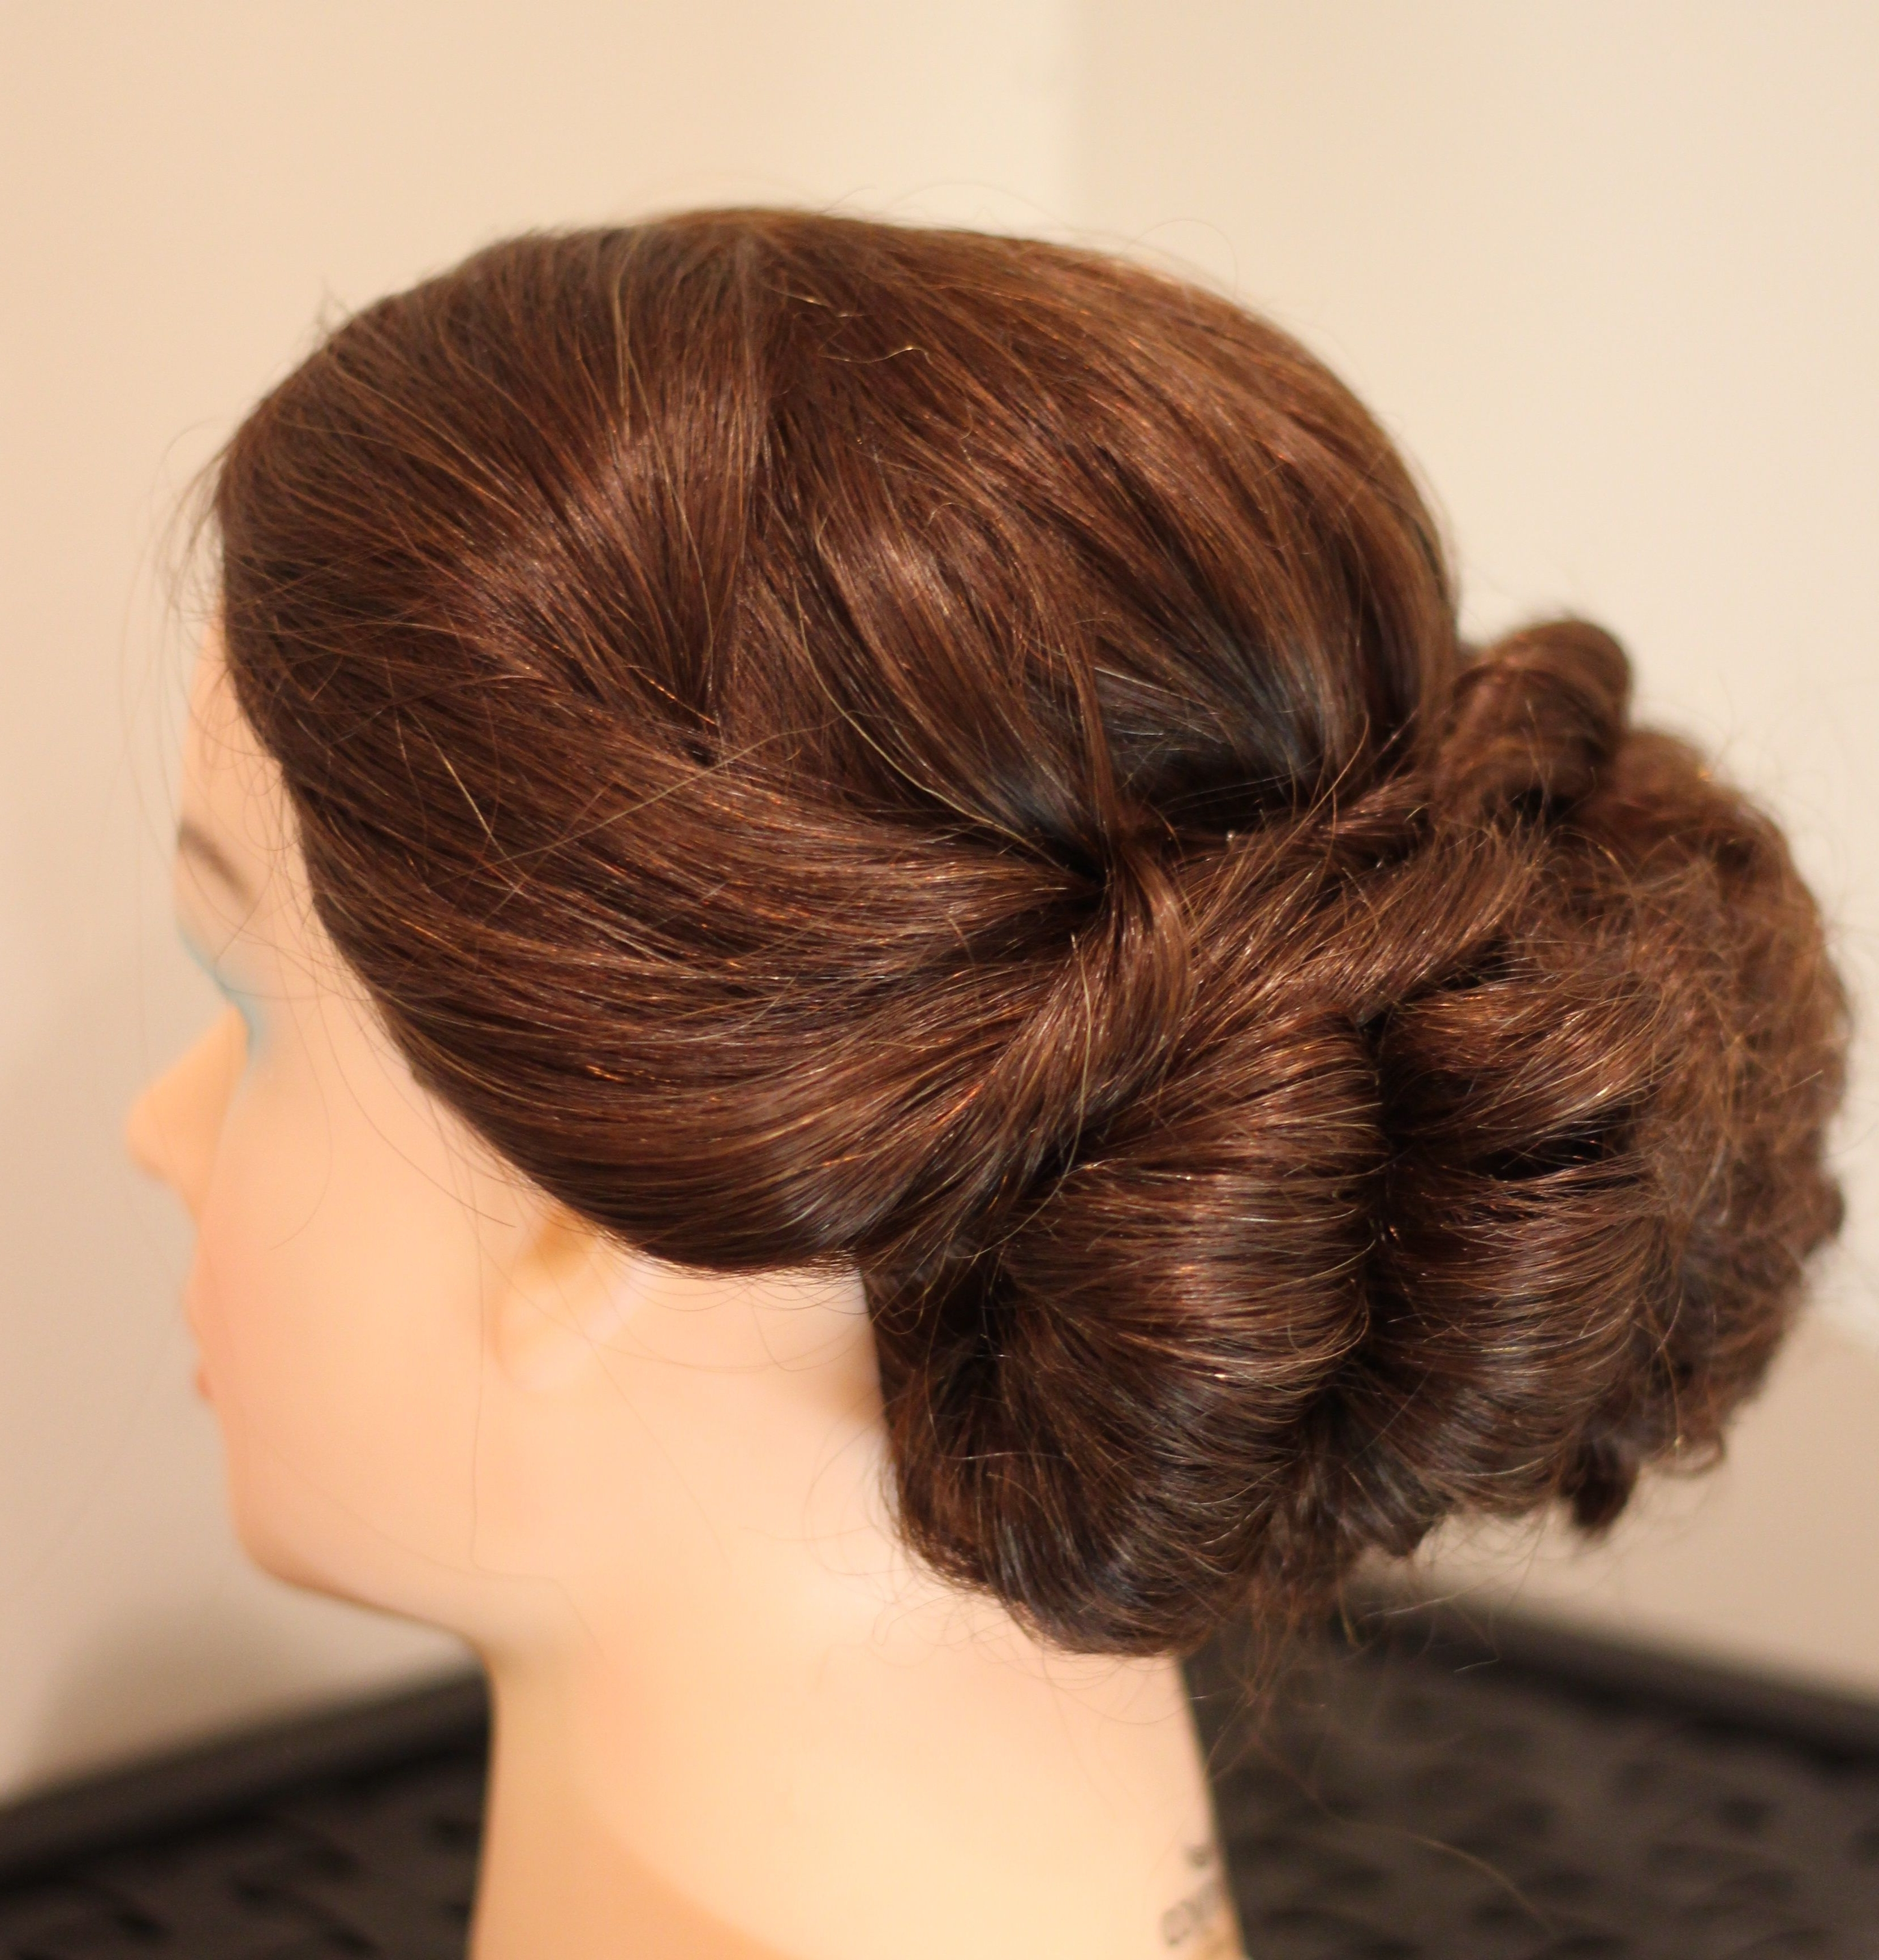 Famous Loose Bun Wedding Hairstyles For Low Loose Bun (Gallery 9 of 15)